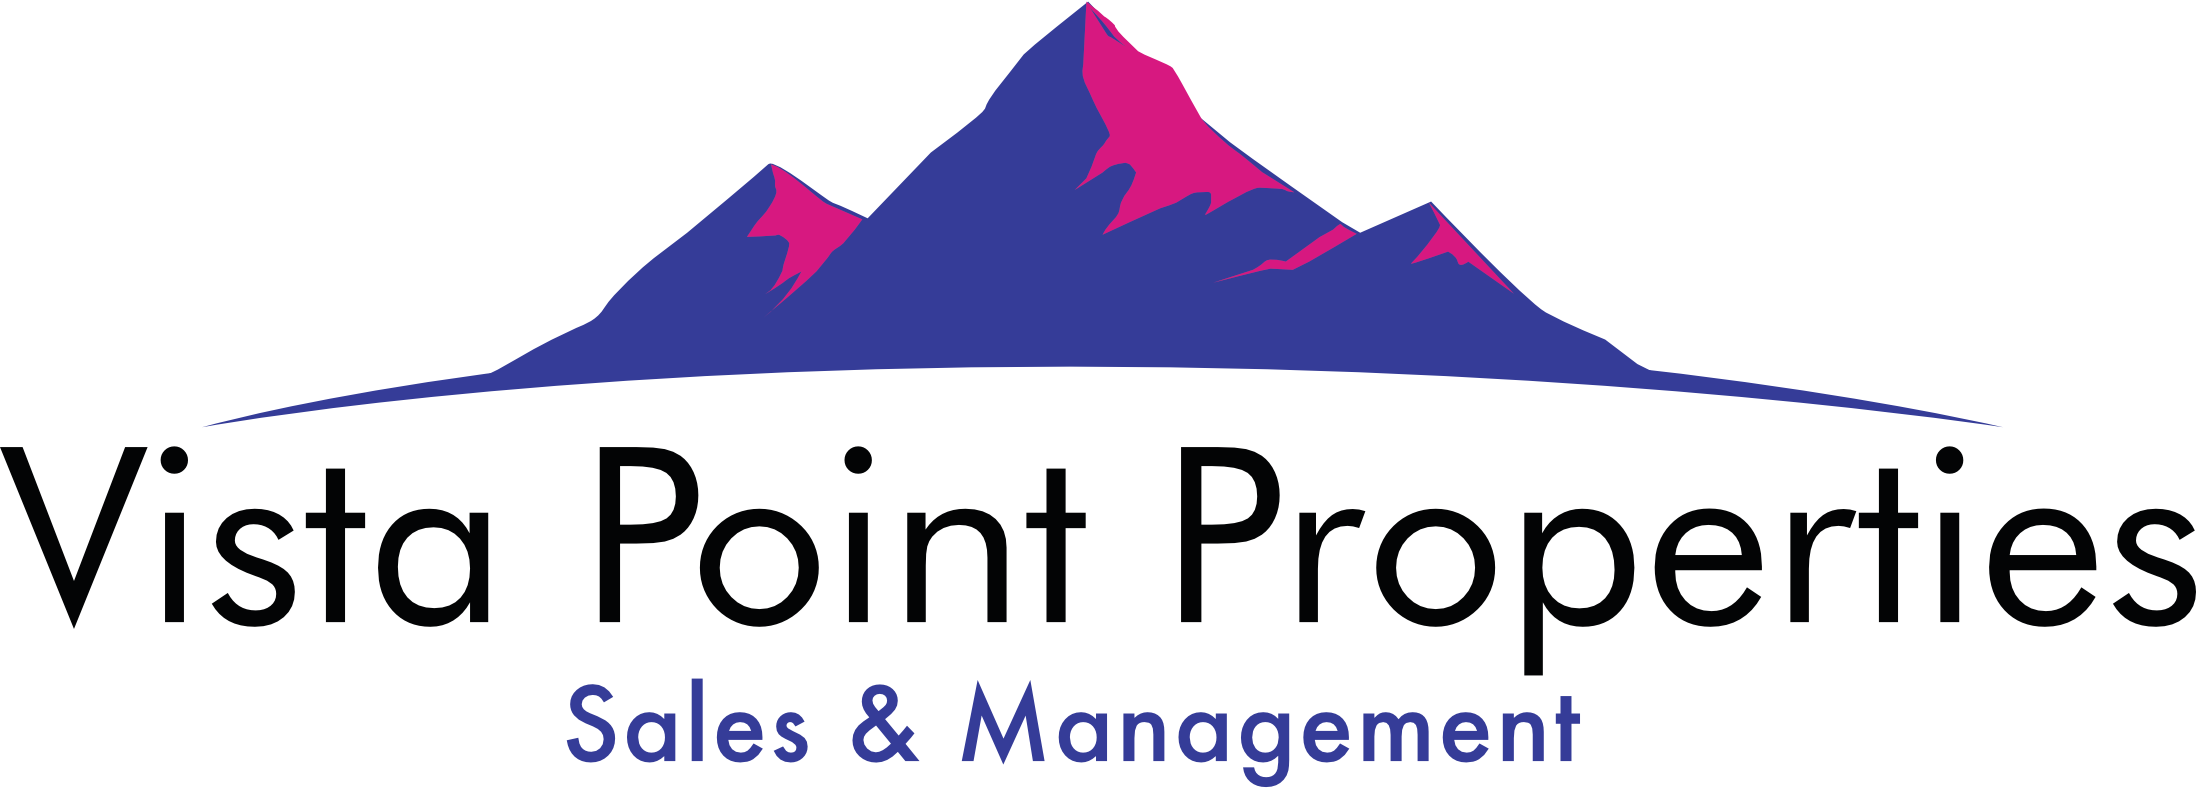 Vista Point Properties |   Helpful Tenant tips